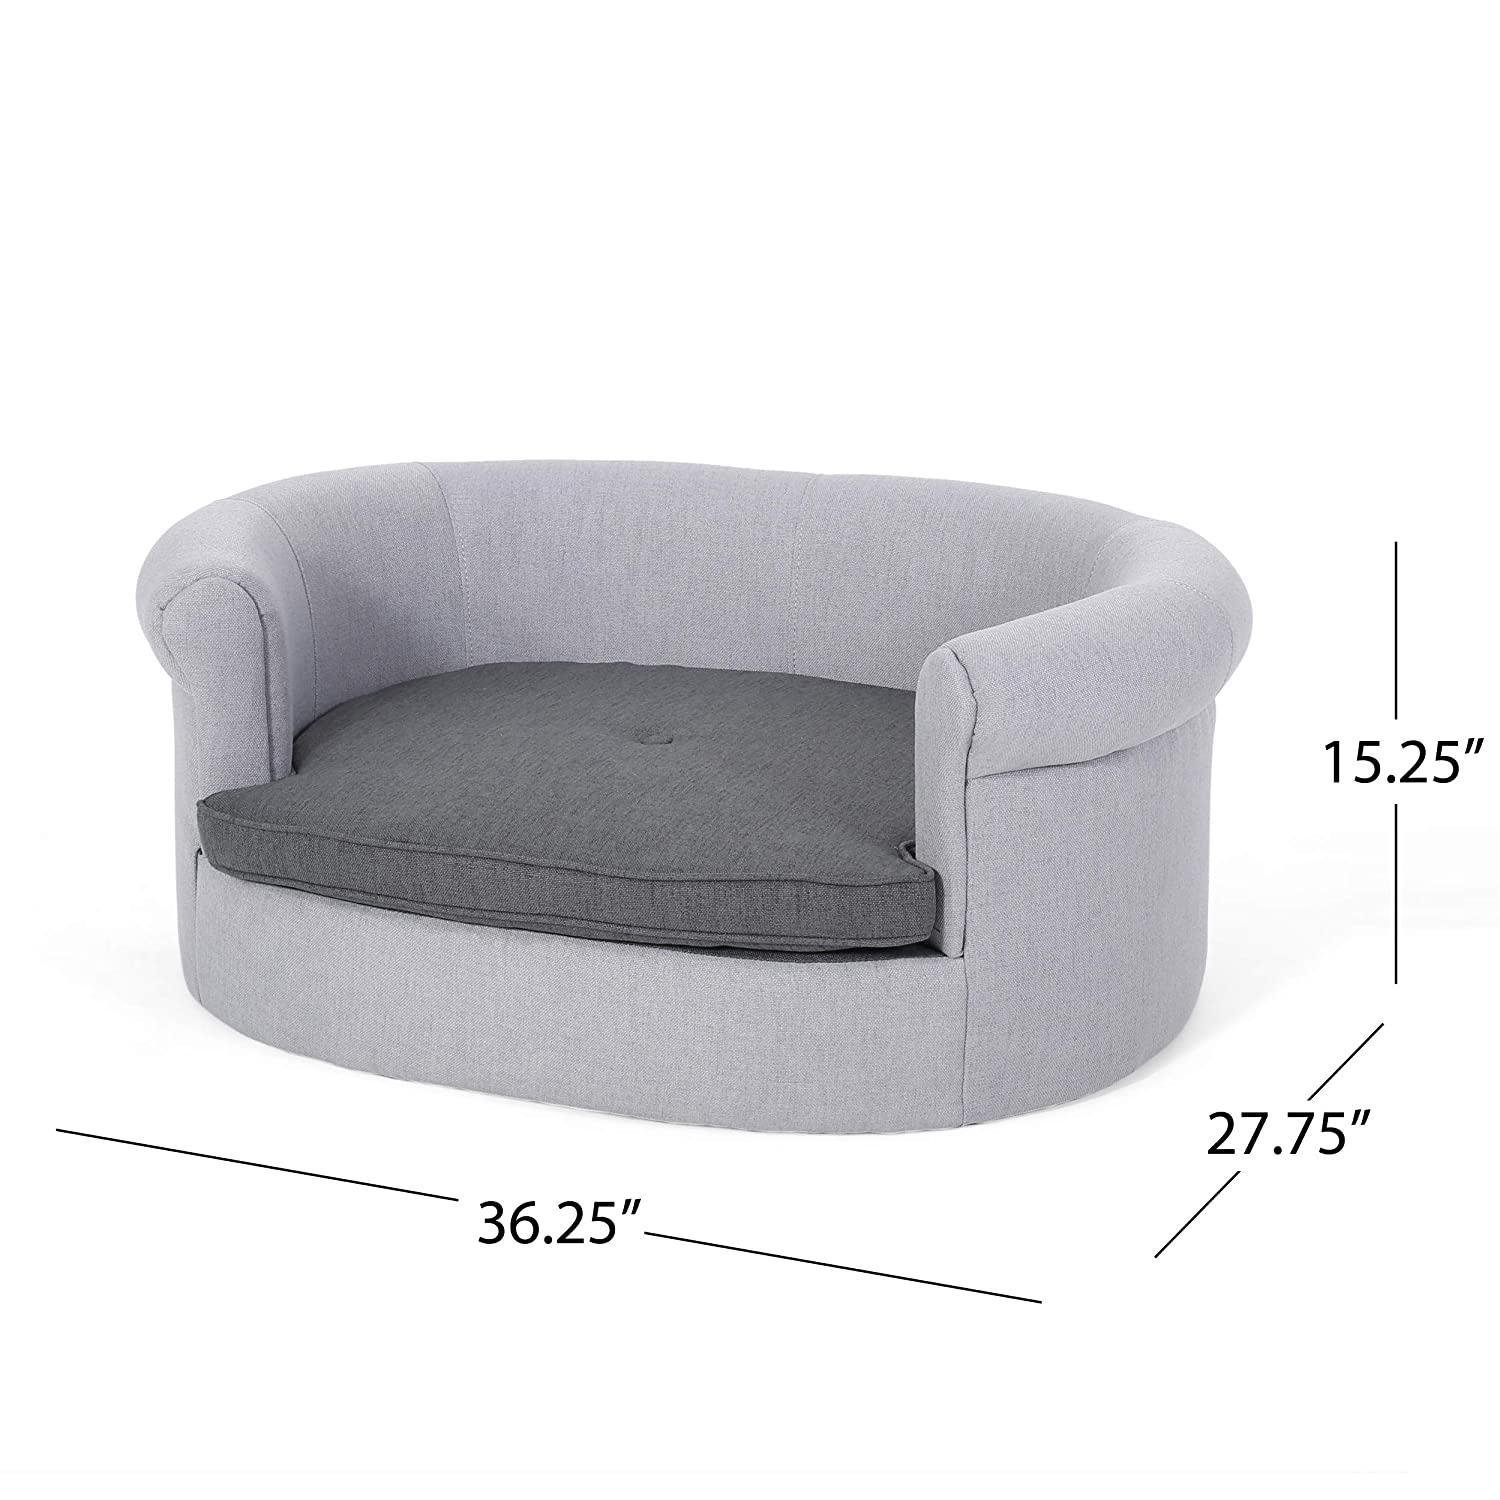 Amazon.com: Great Deal Furniture Setlla Oval Fabric Dog Sofa ...